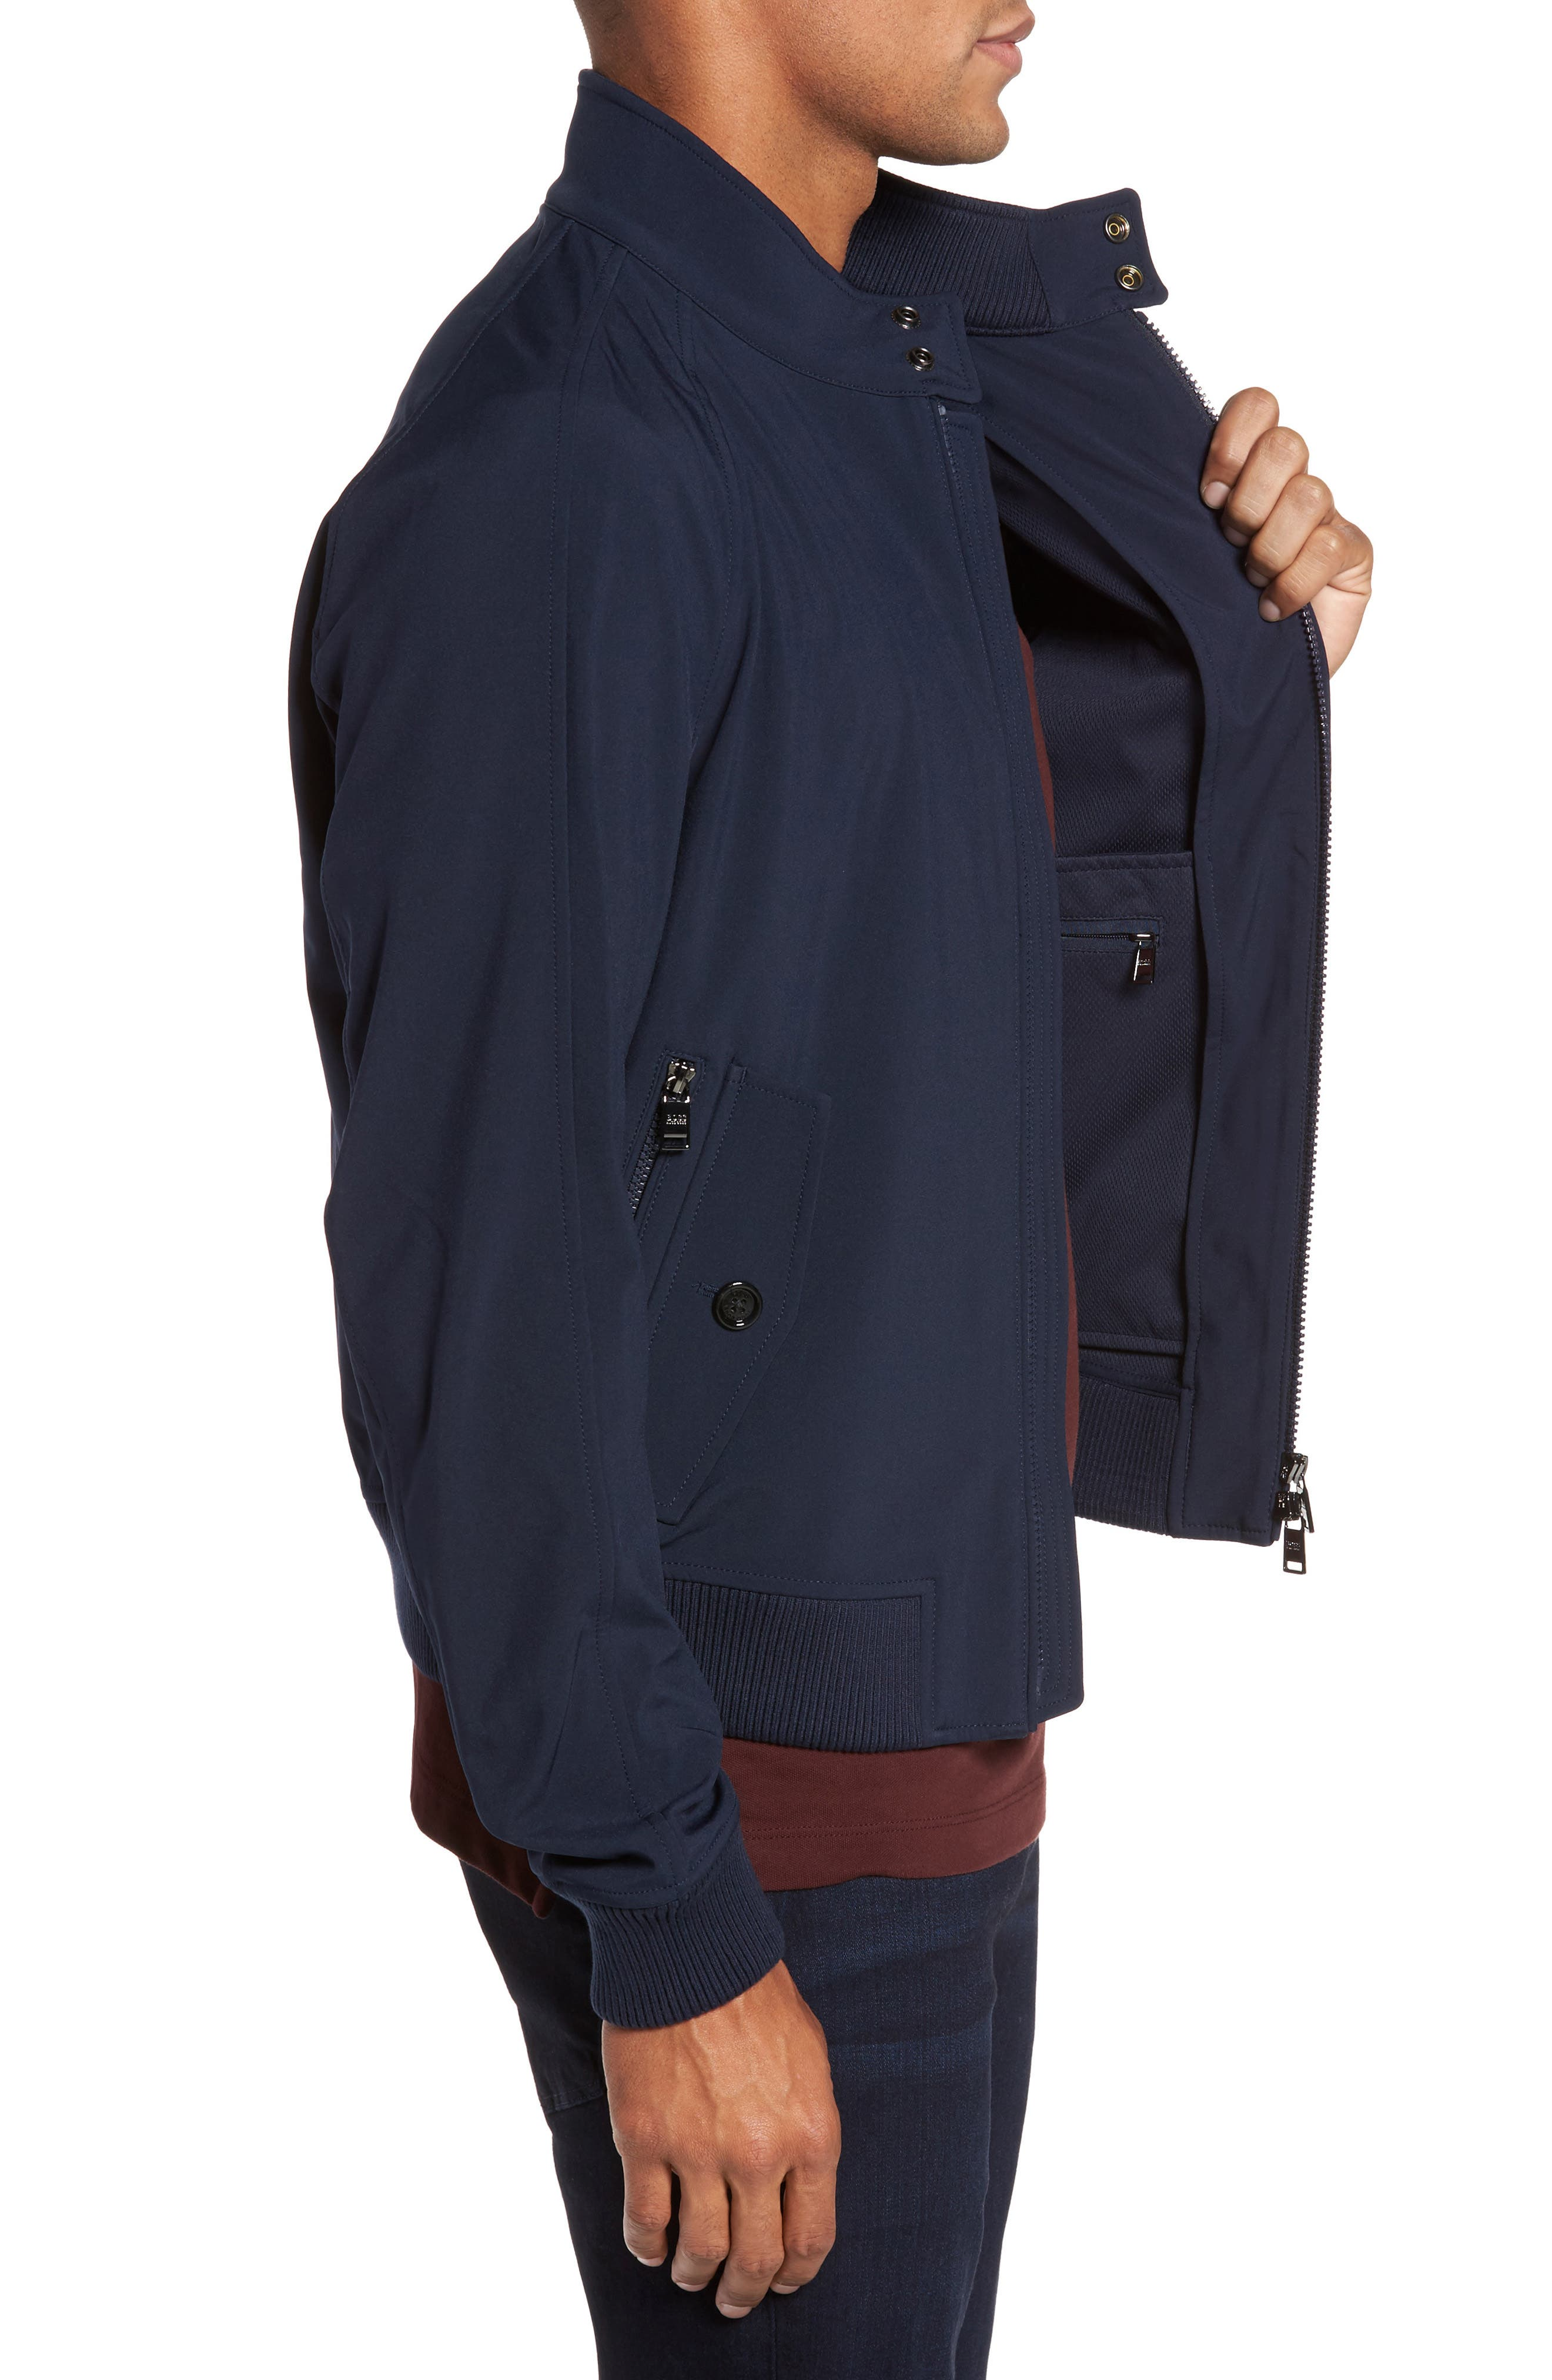 Corva Technical Jacket,                             Alternate thumbnail 3, color,                             Navy